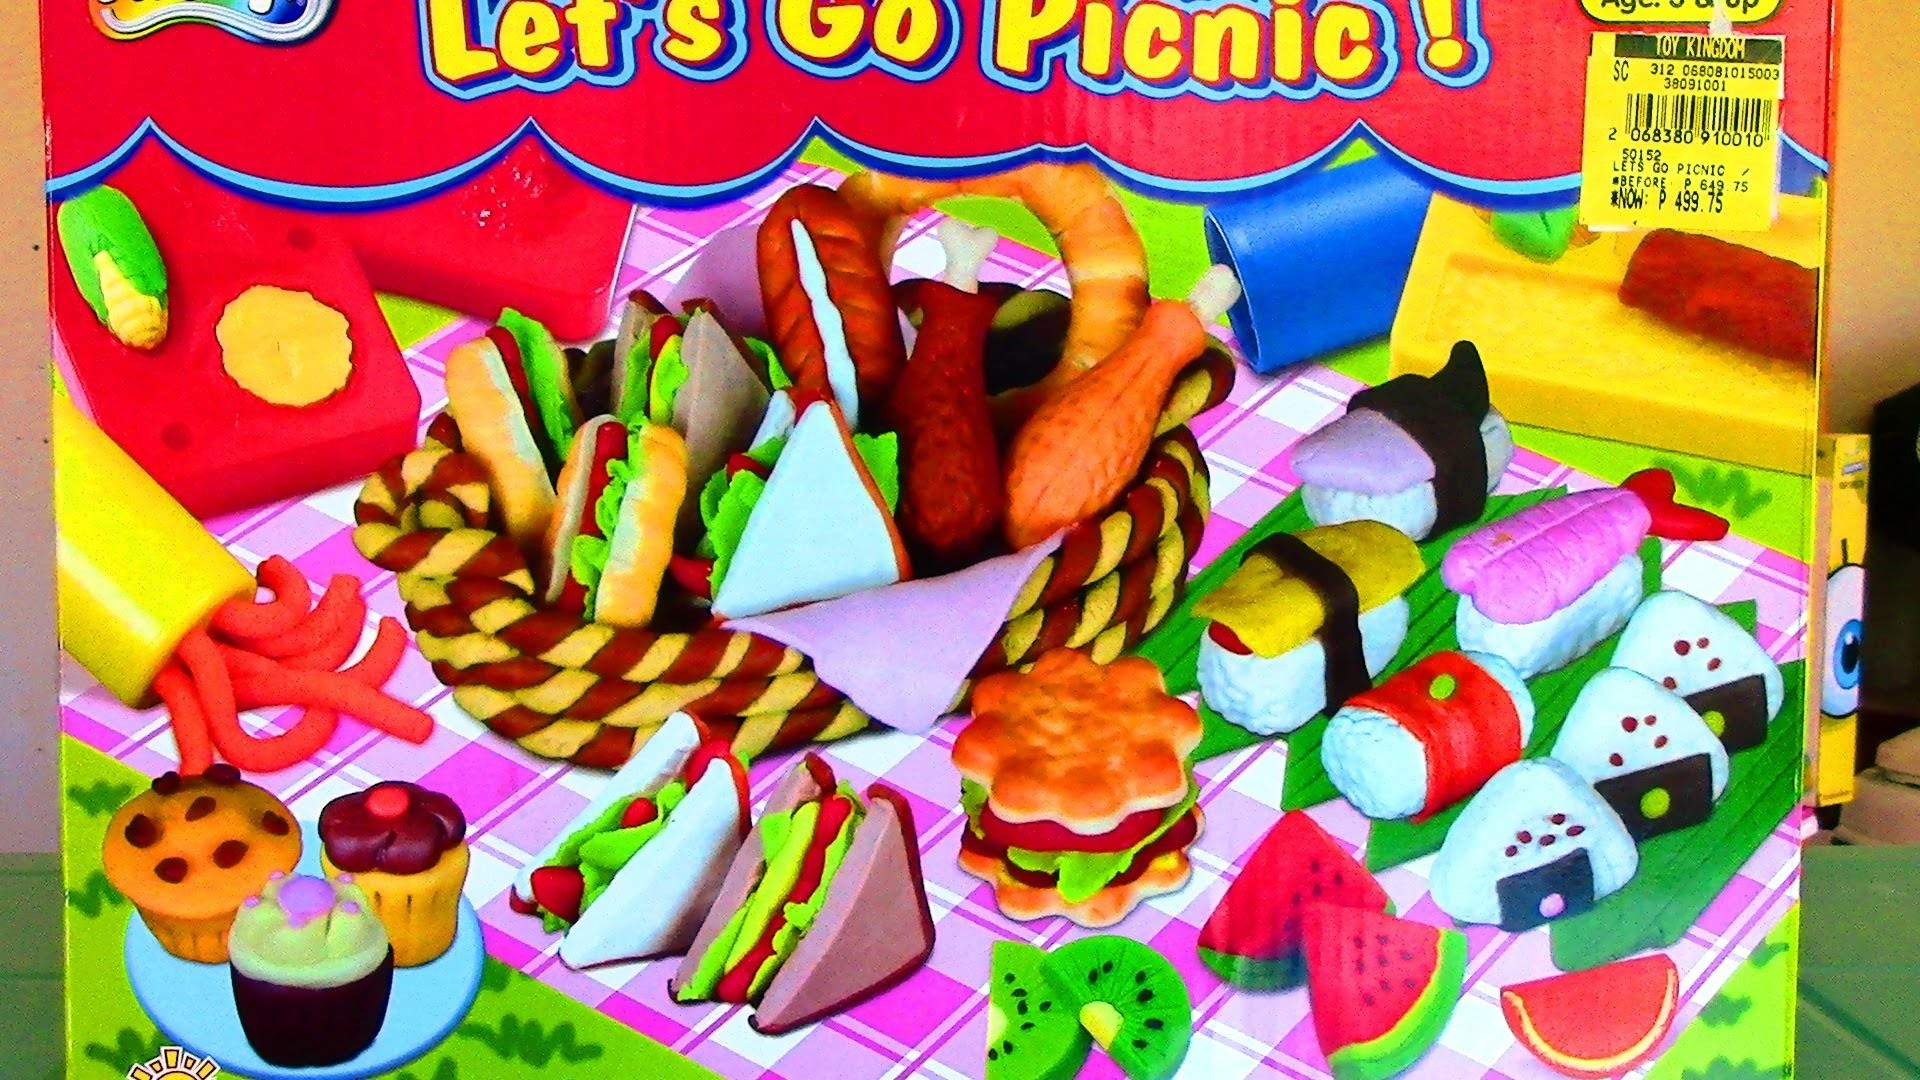 Doh-Dough Let's Go Picnic Playset Fried Chicken Hot Dog Sushi Play Dough - Like Play-Doh